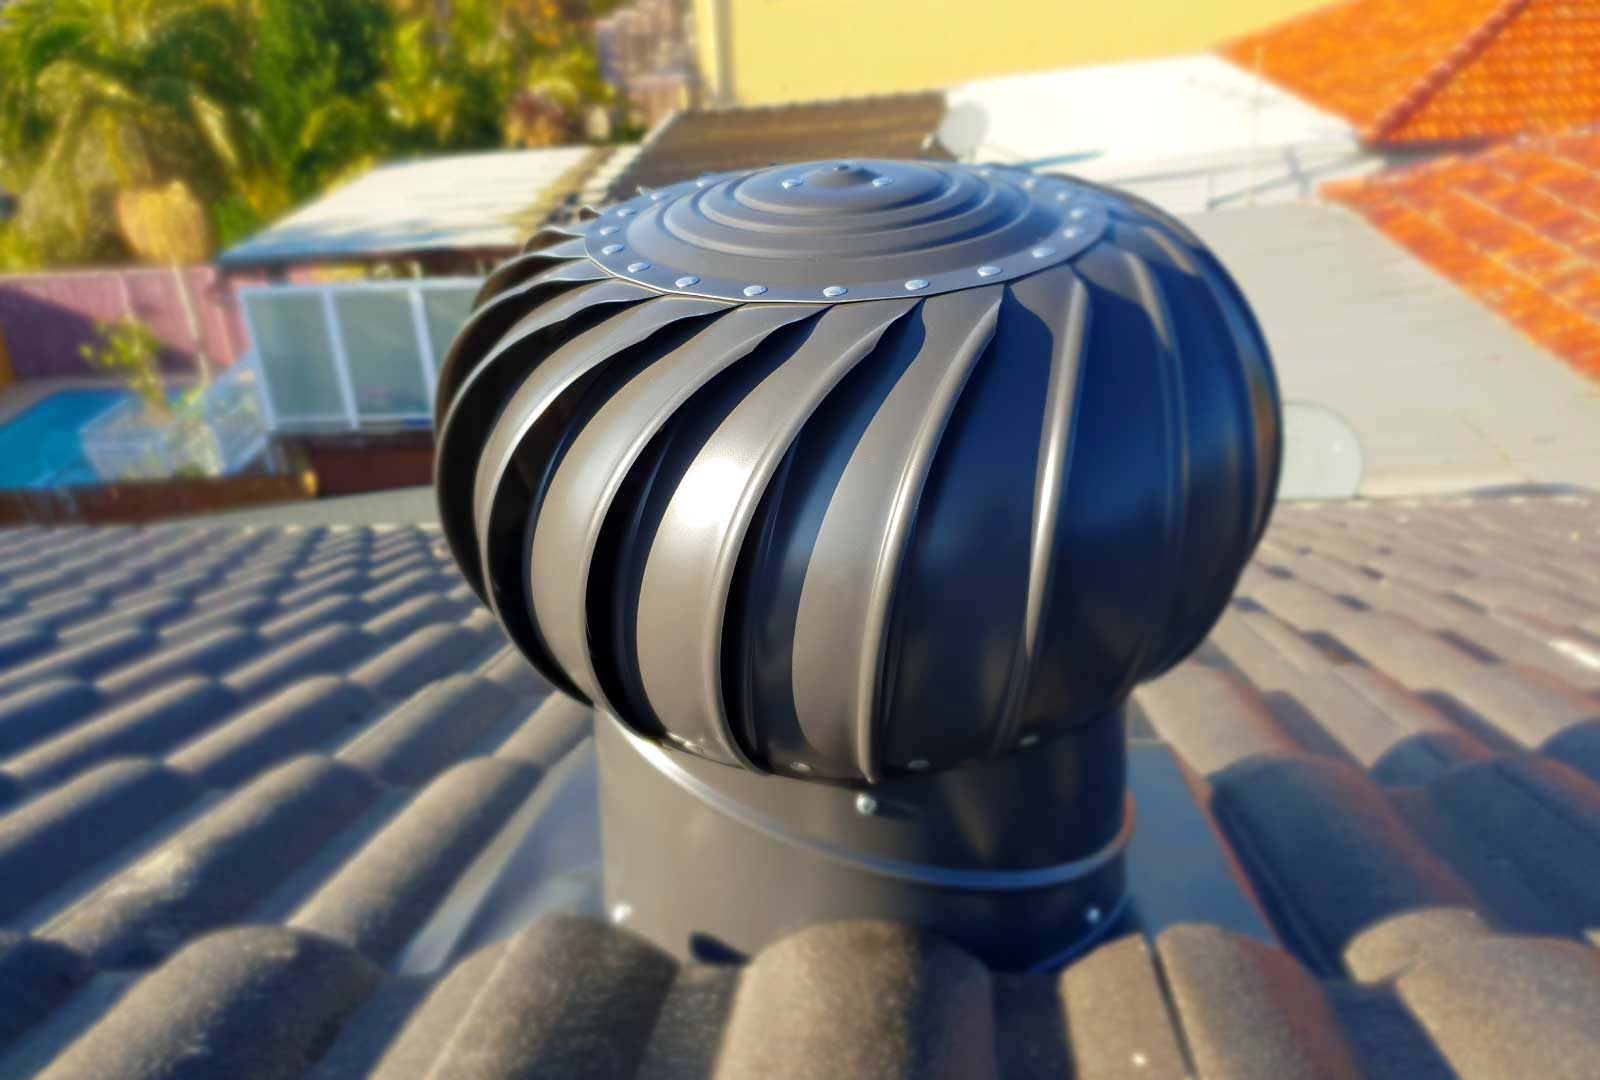 The Benefits Of Wind Powered Whirlybird Roof Vents To Your